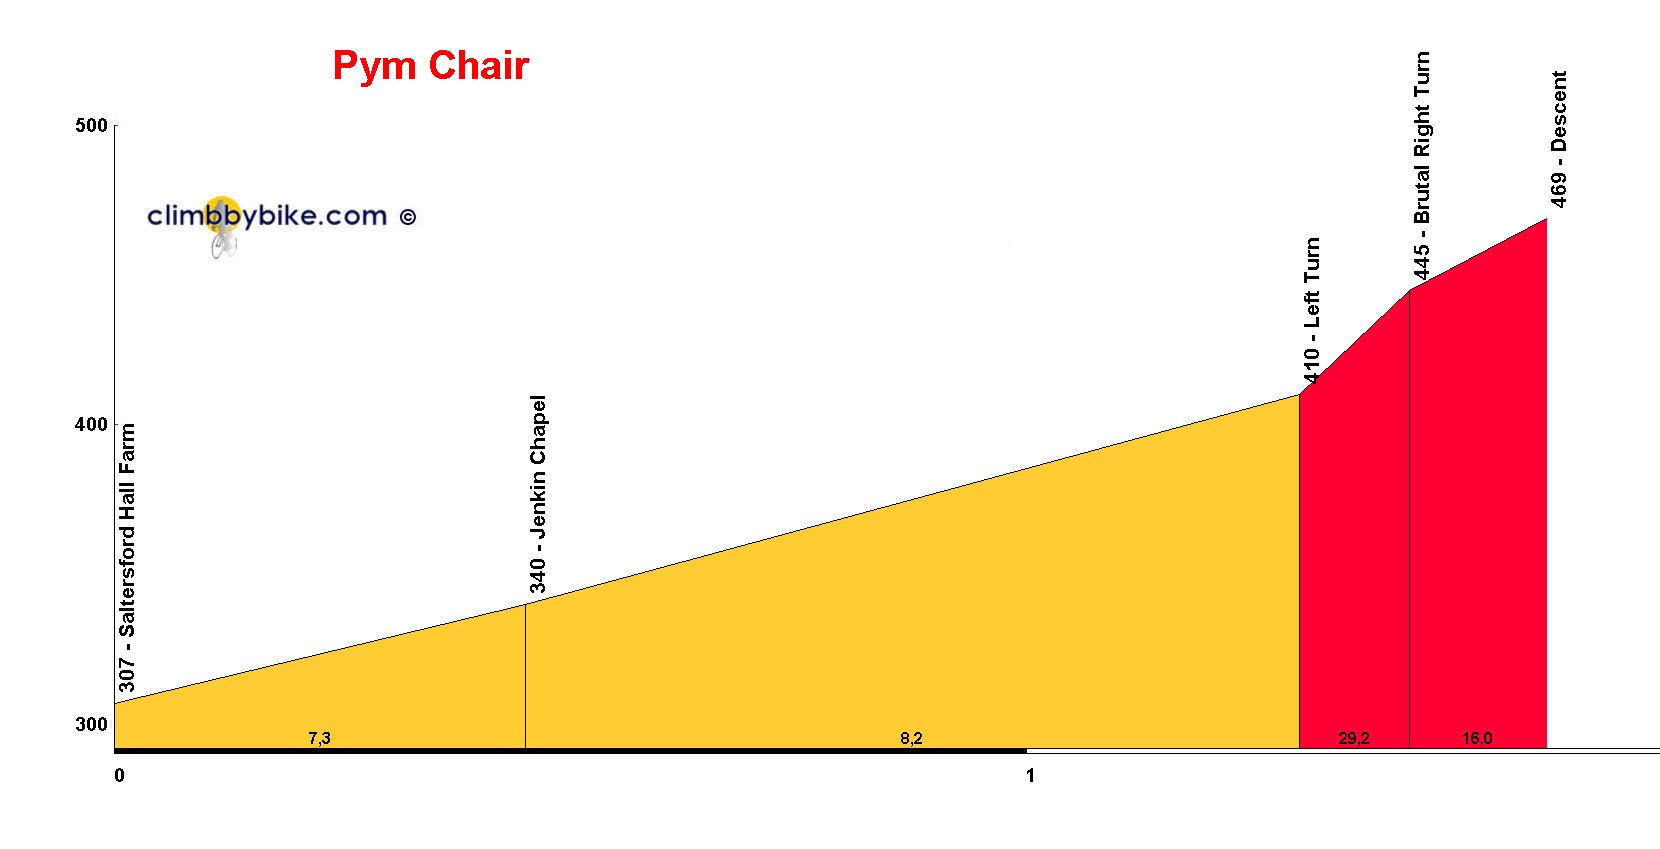 Elevation profile for Pym Chair